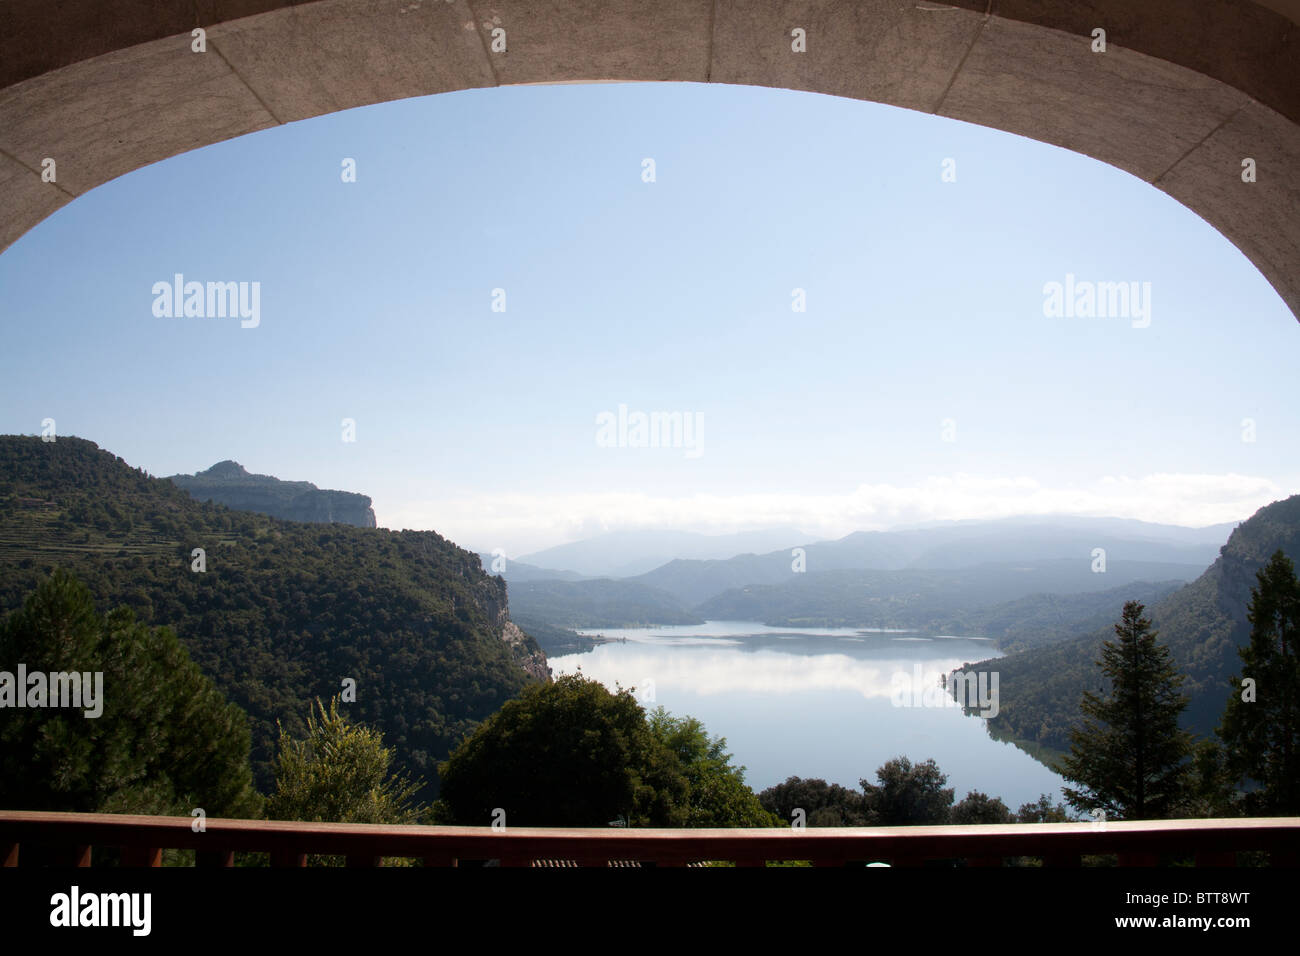 View from the balcony of the Sau reservoir Vic Parador, Catalonia Spain - Stock Image